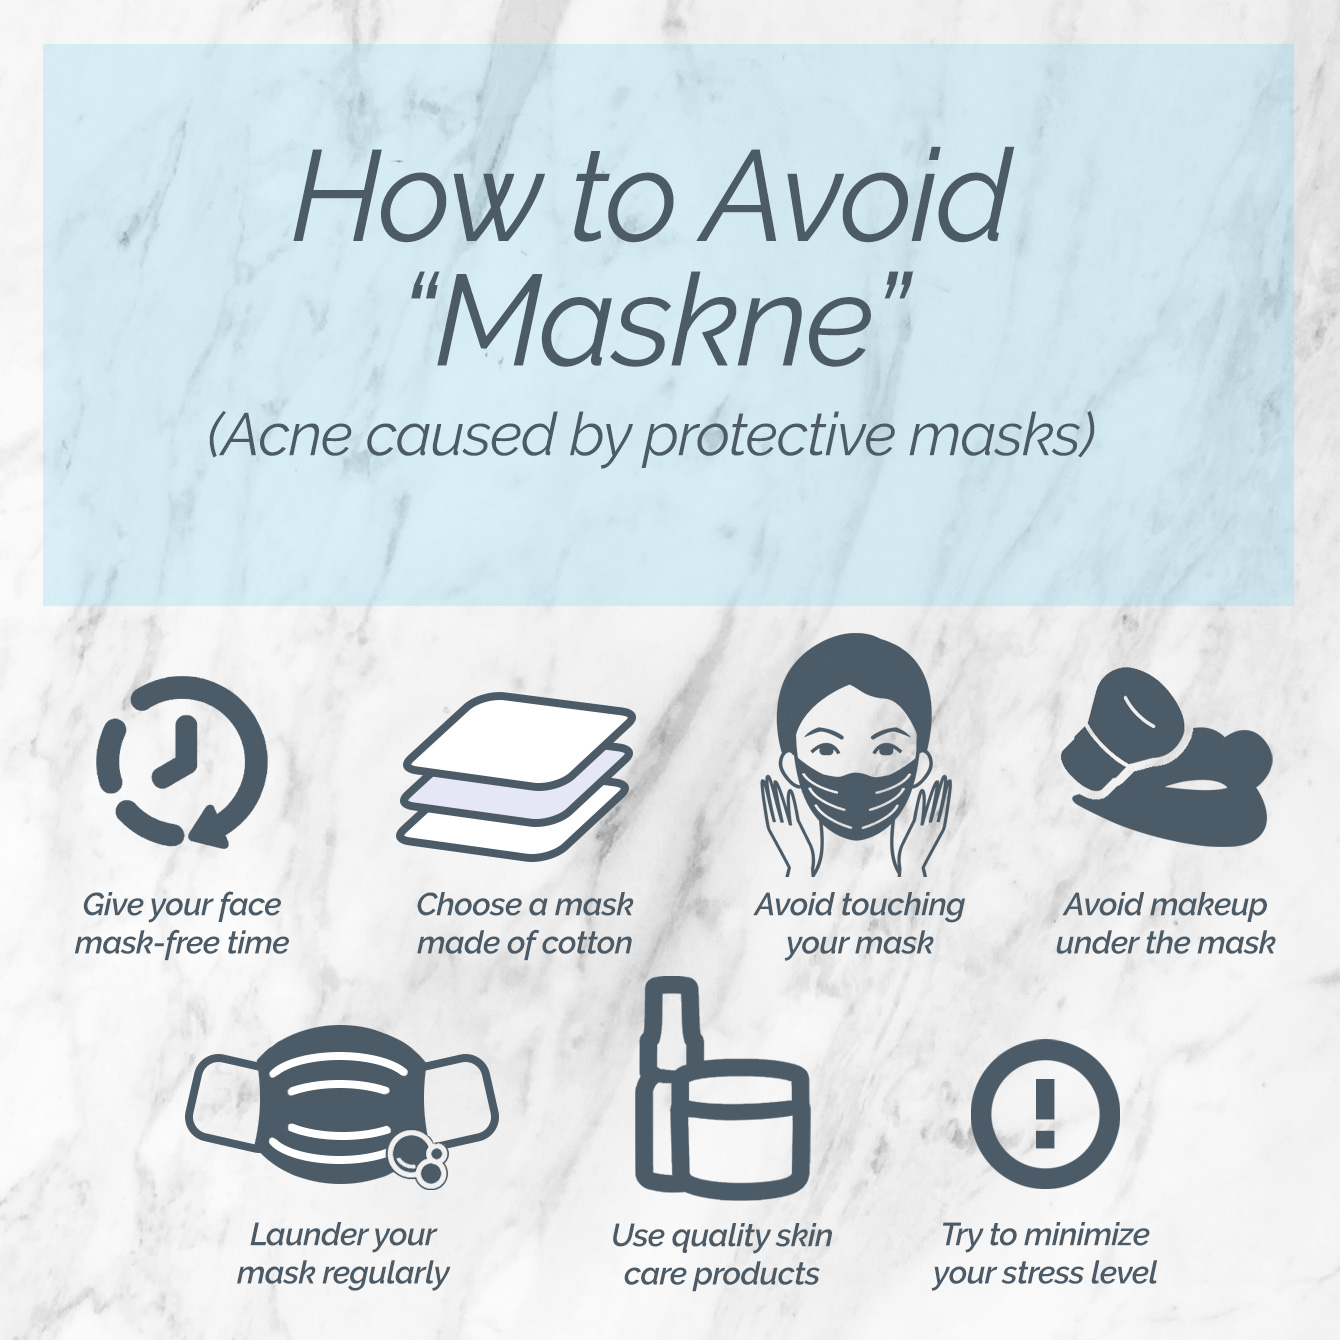 How to avoid maskne, acne caused by face masks